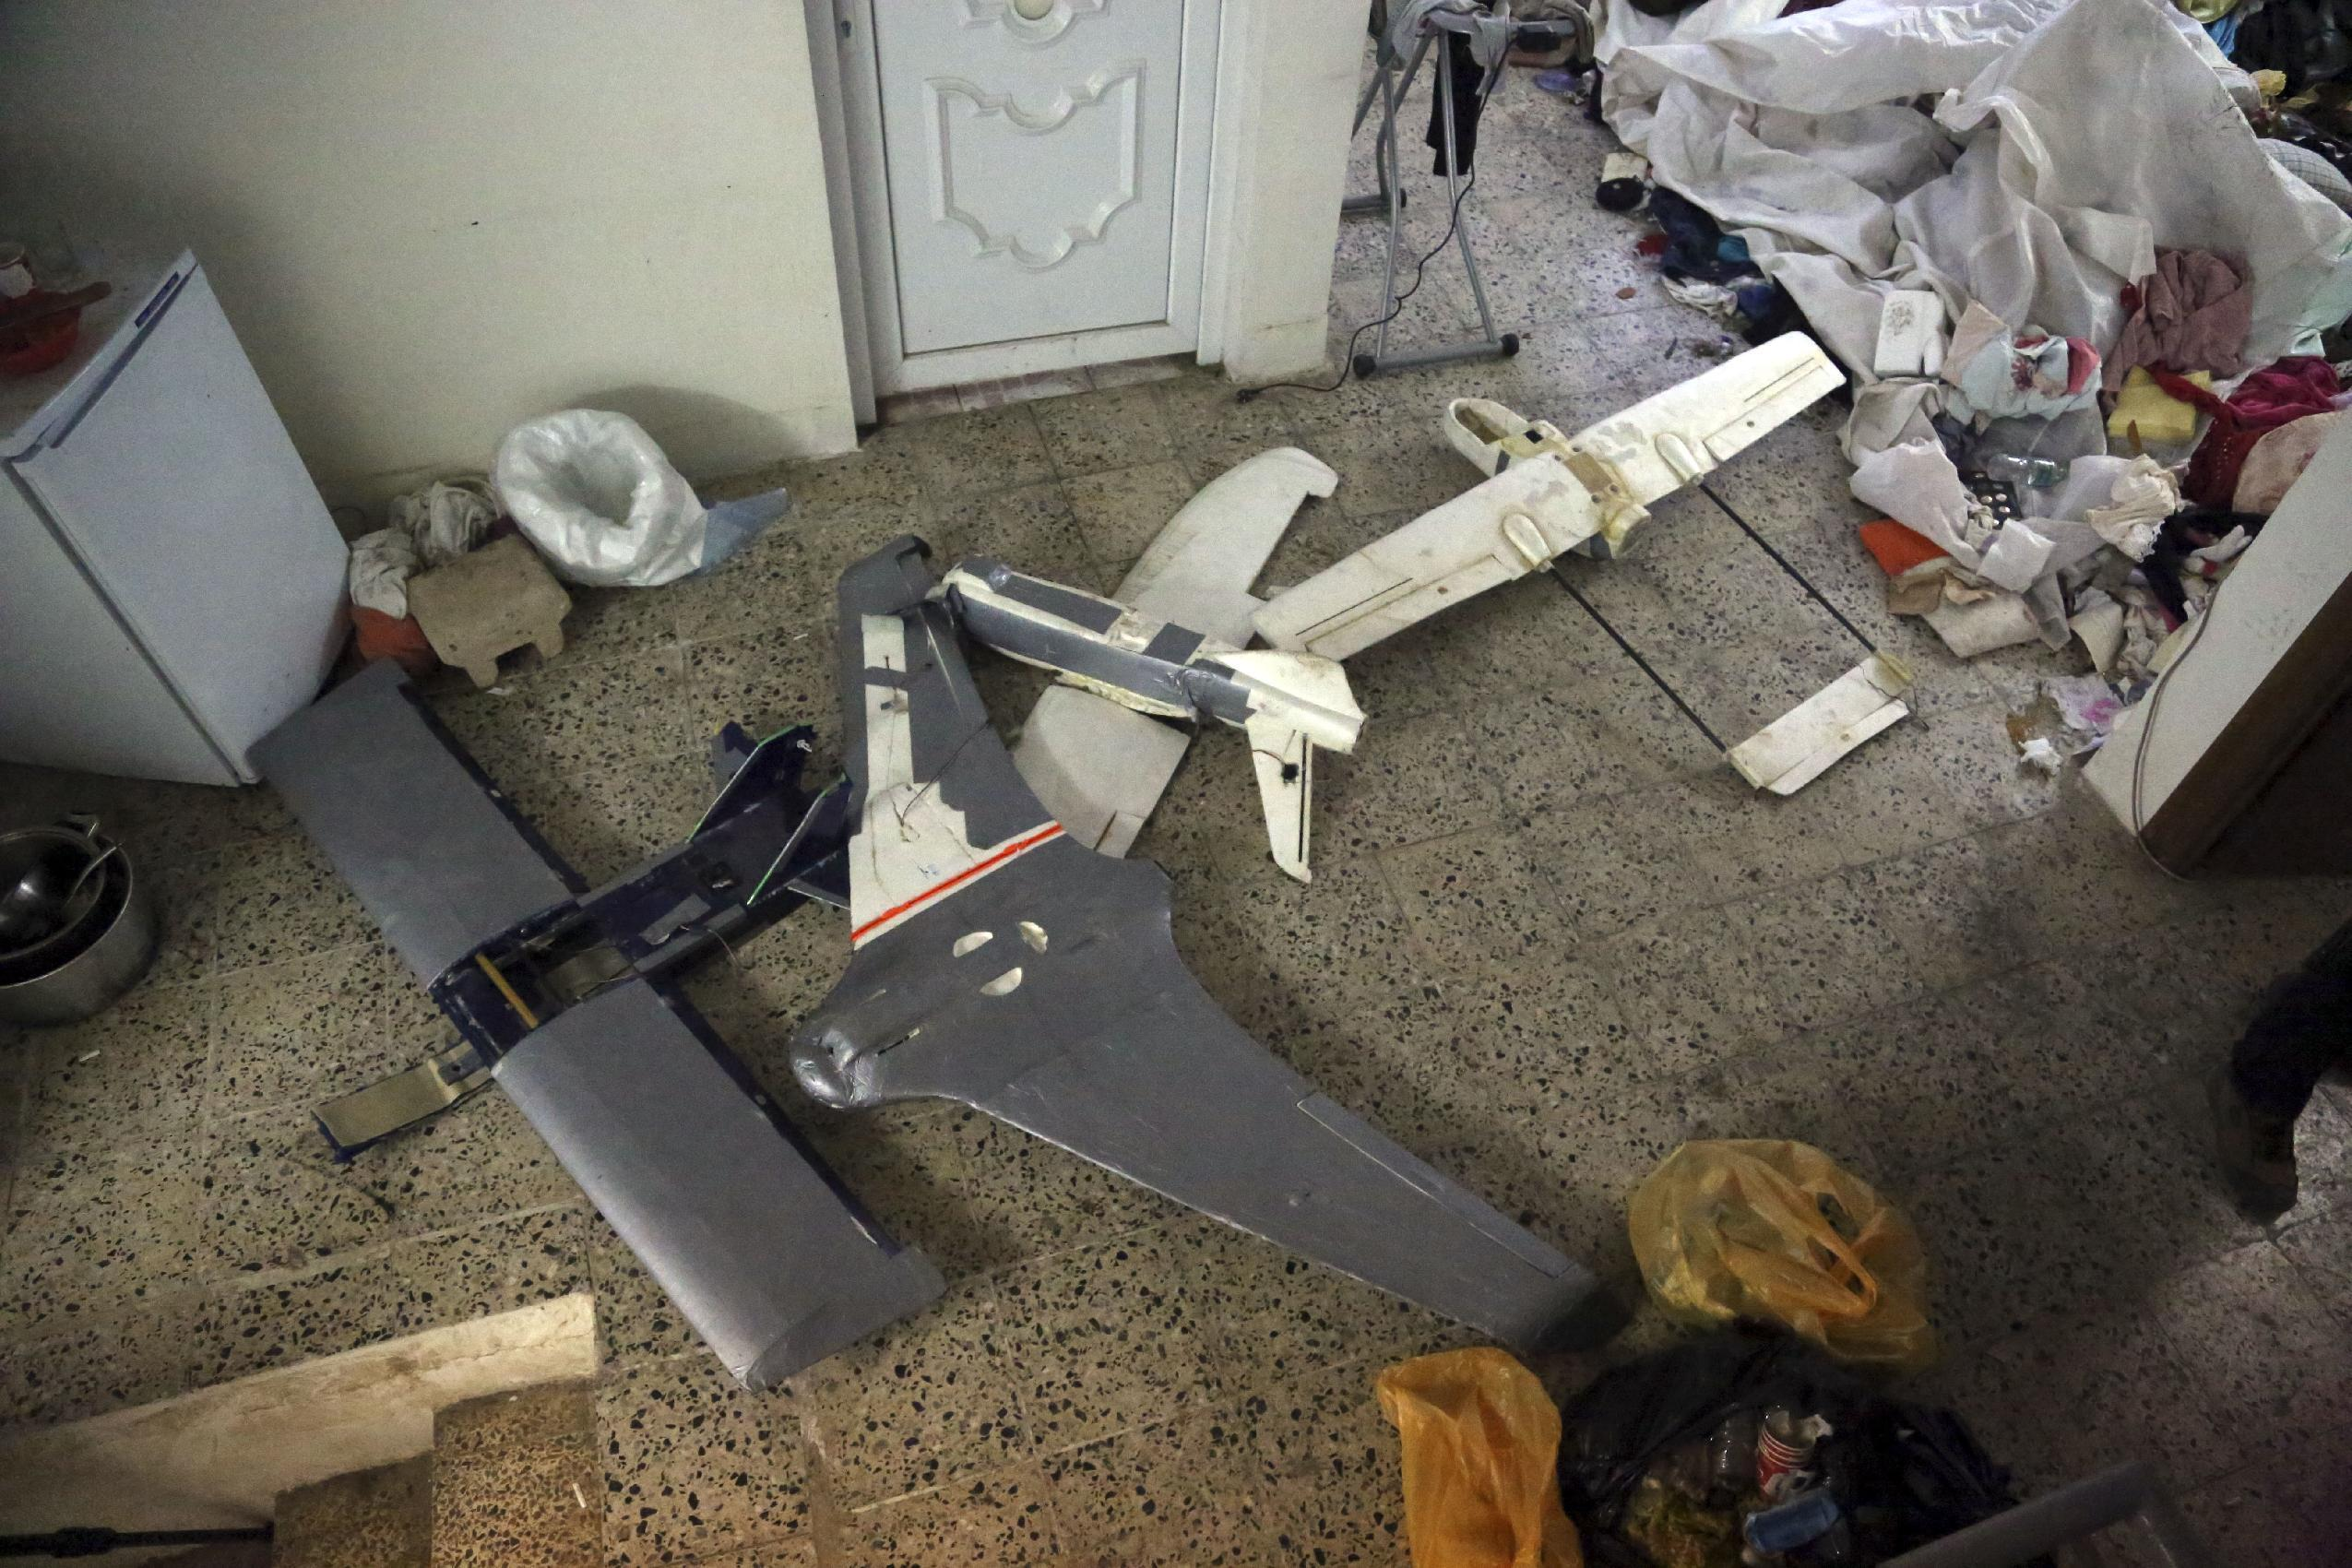 In this Friday, Jan. 27, 2017 photo, drones belonging to Islamic State militants in Mosul, Iraq. Islamic State is hacking store-bought drone technology, using rigorous testing and tactics that mimic those used by U.S. unmanned aircraft to adapt to diminishing numbers of fighters and a battlefield that is increasingly difficult to navigate on the ground. (AP Photo/ Khalid Mohammed)